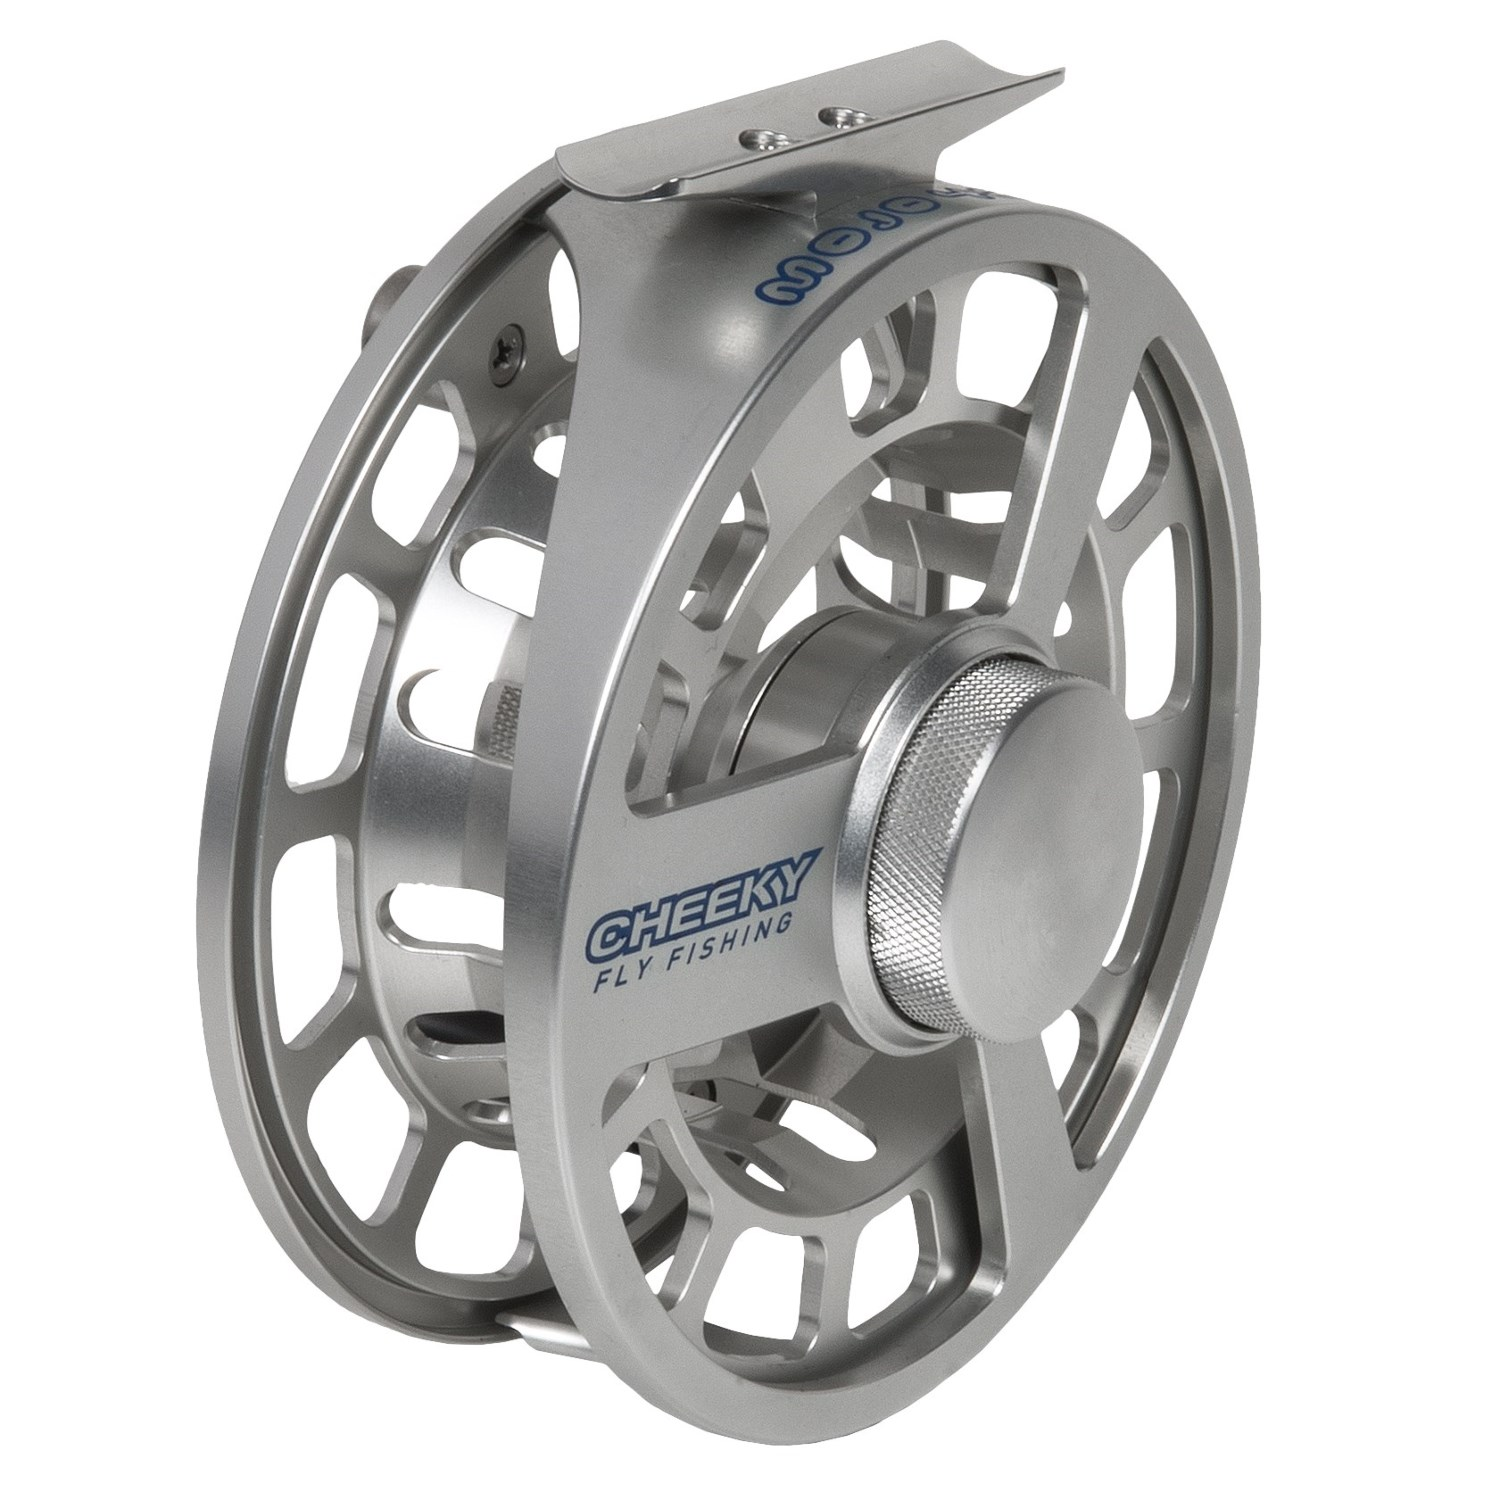 Cheeky fly fishing thrash 475 fly reel 10 12wt save 45 for Cheeky fly fishing